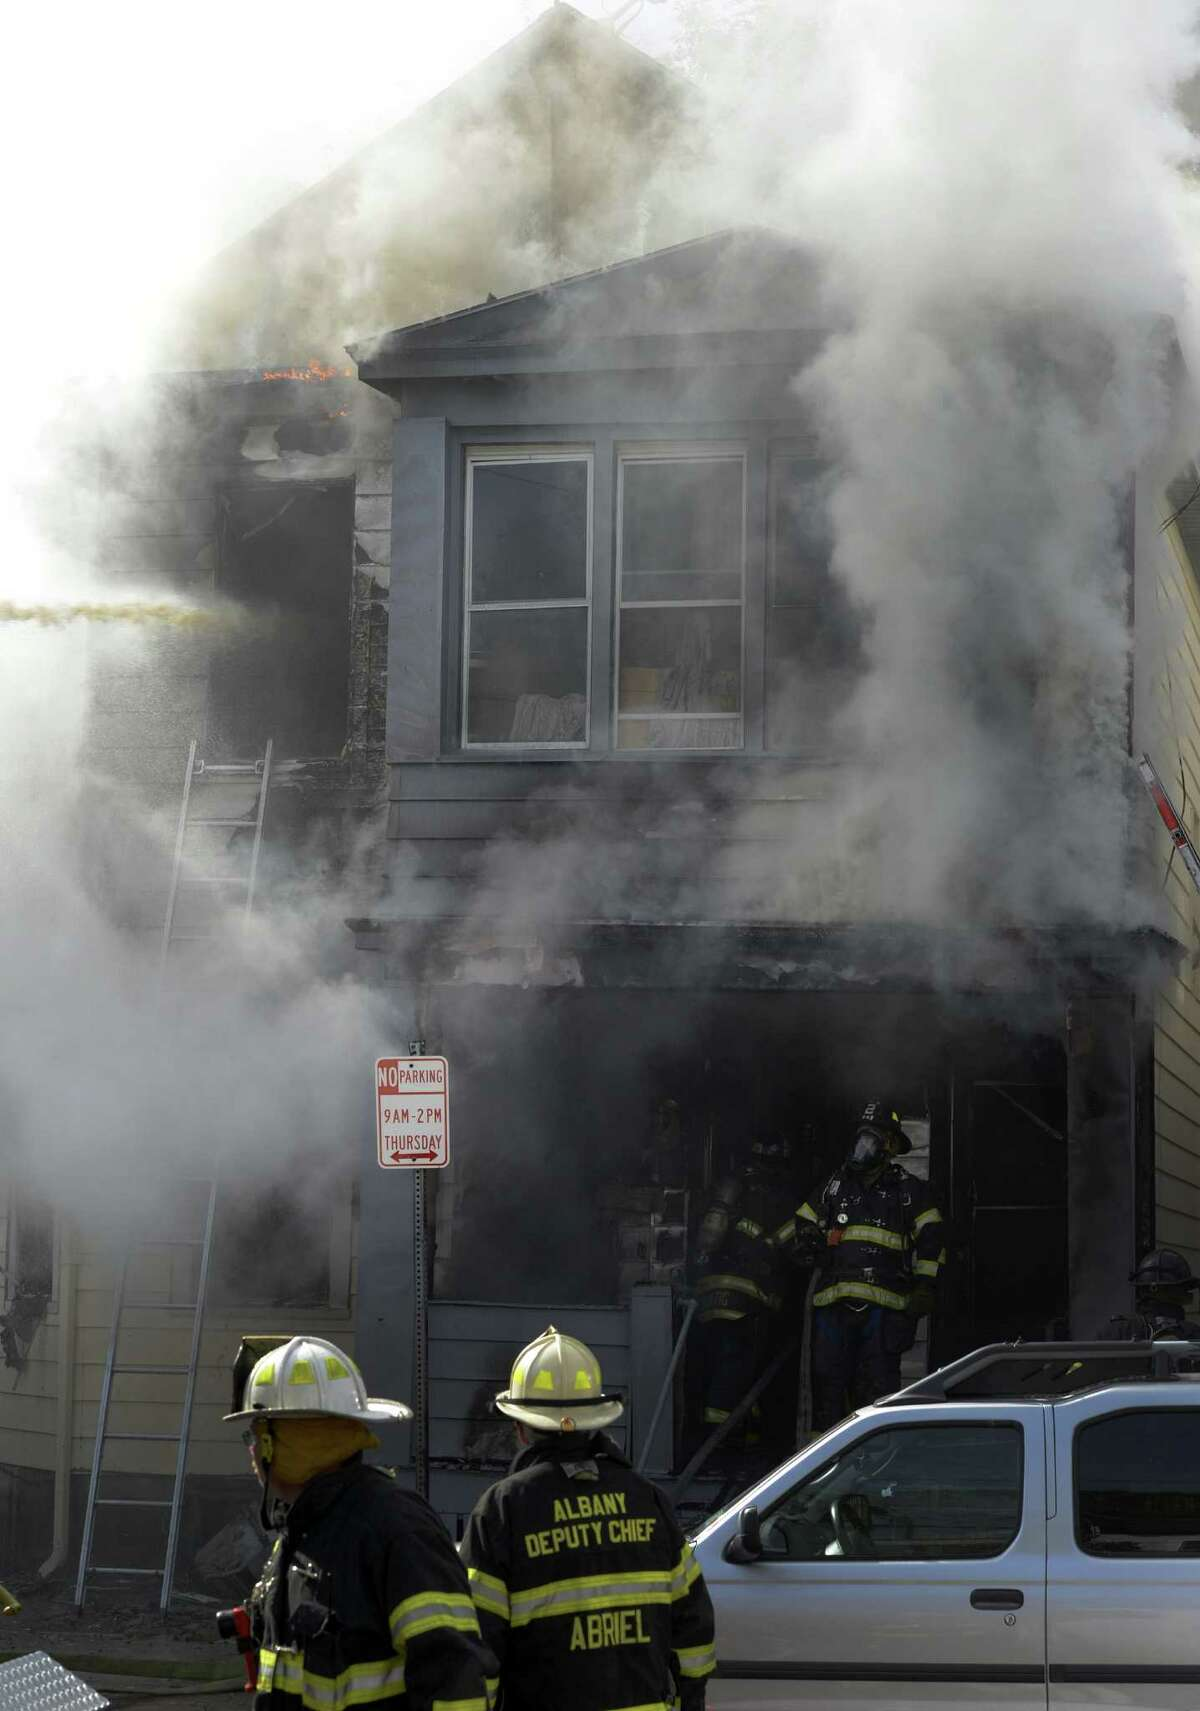 Albany Fire Department personnel fight a fire at 20 Benson St. in Albany, N.Y. Oct 17, 2012. A child rescued from the building was taken to a burn unit in Boston by helicopter, according to Chief Robert Forezzi of the Albany Fire Department. She later died. (Skip Dickstein/Times Union)